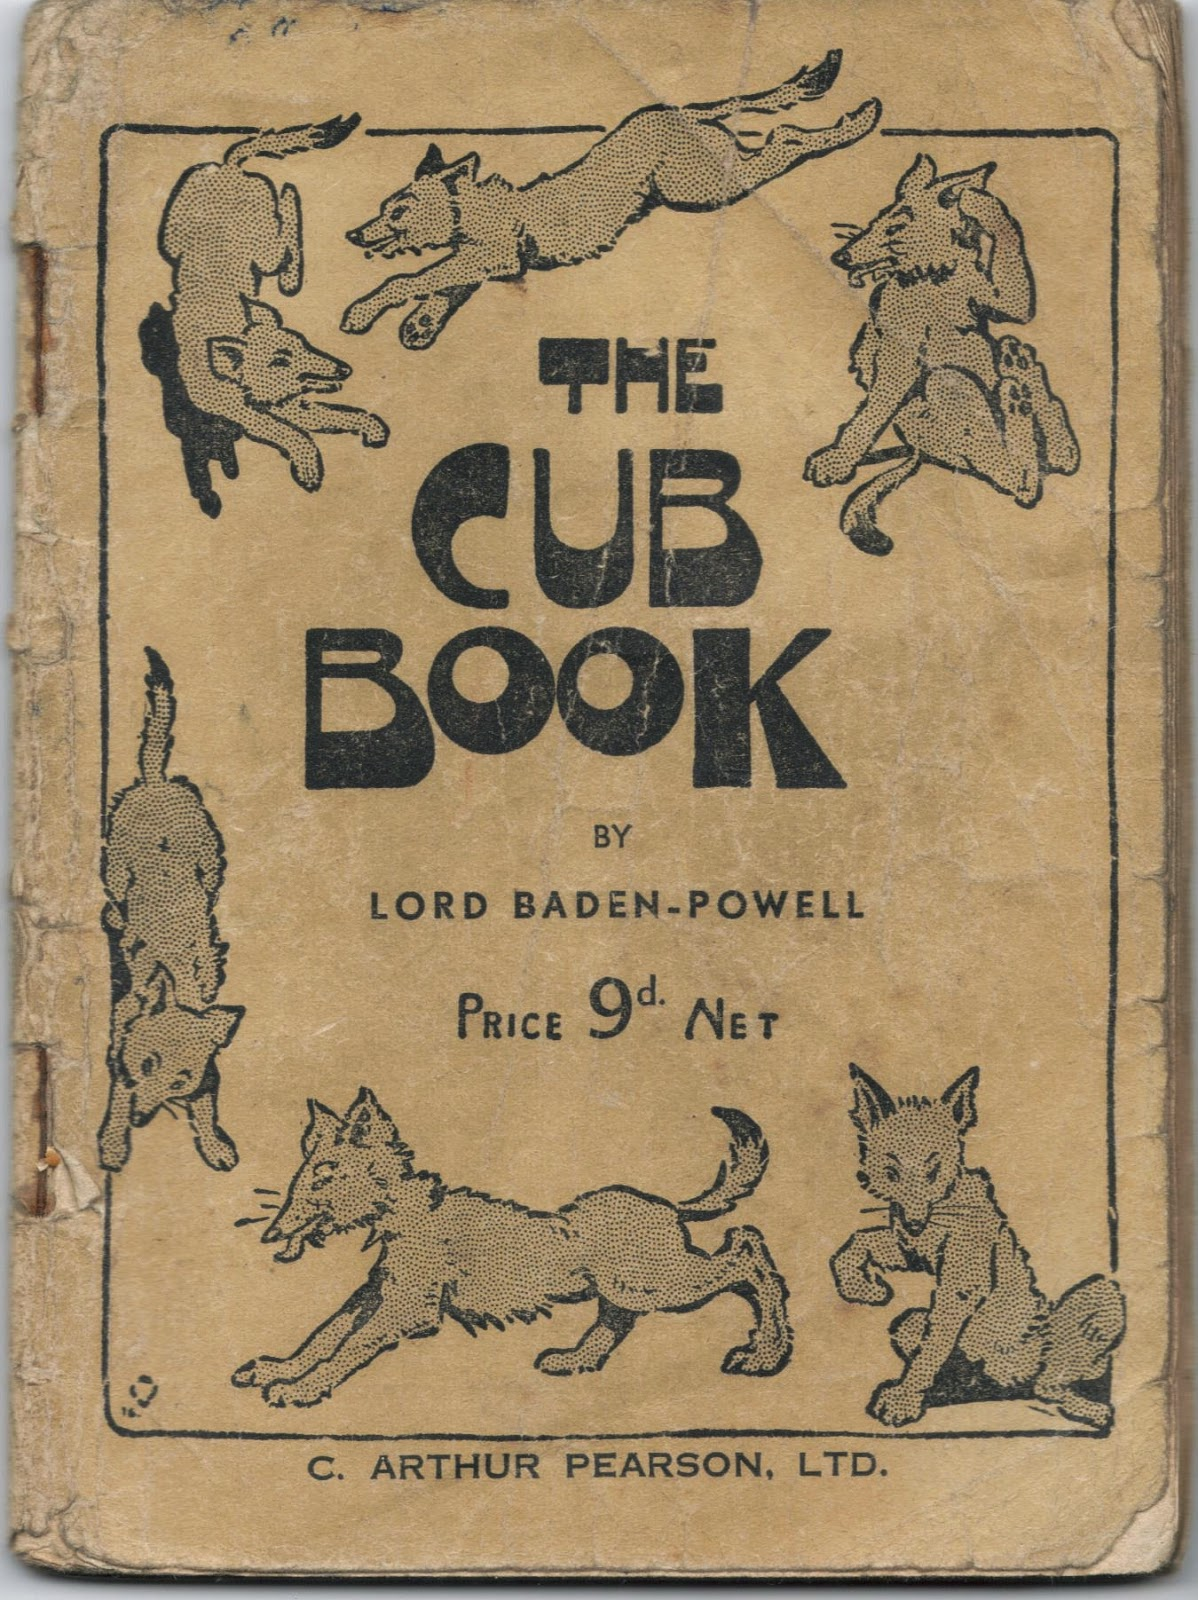 The Cub Book by Lord Baden-Powell